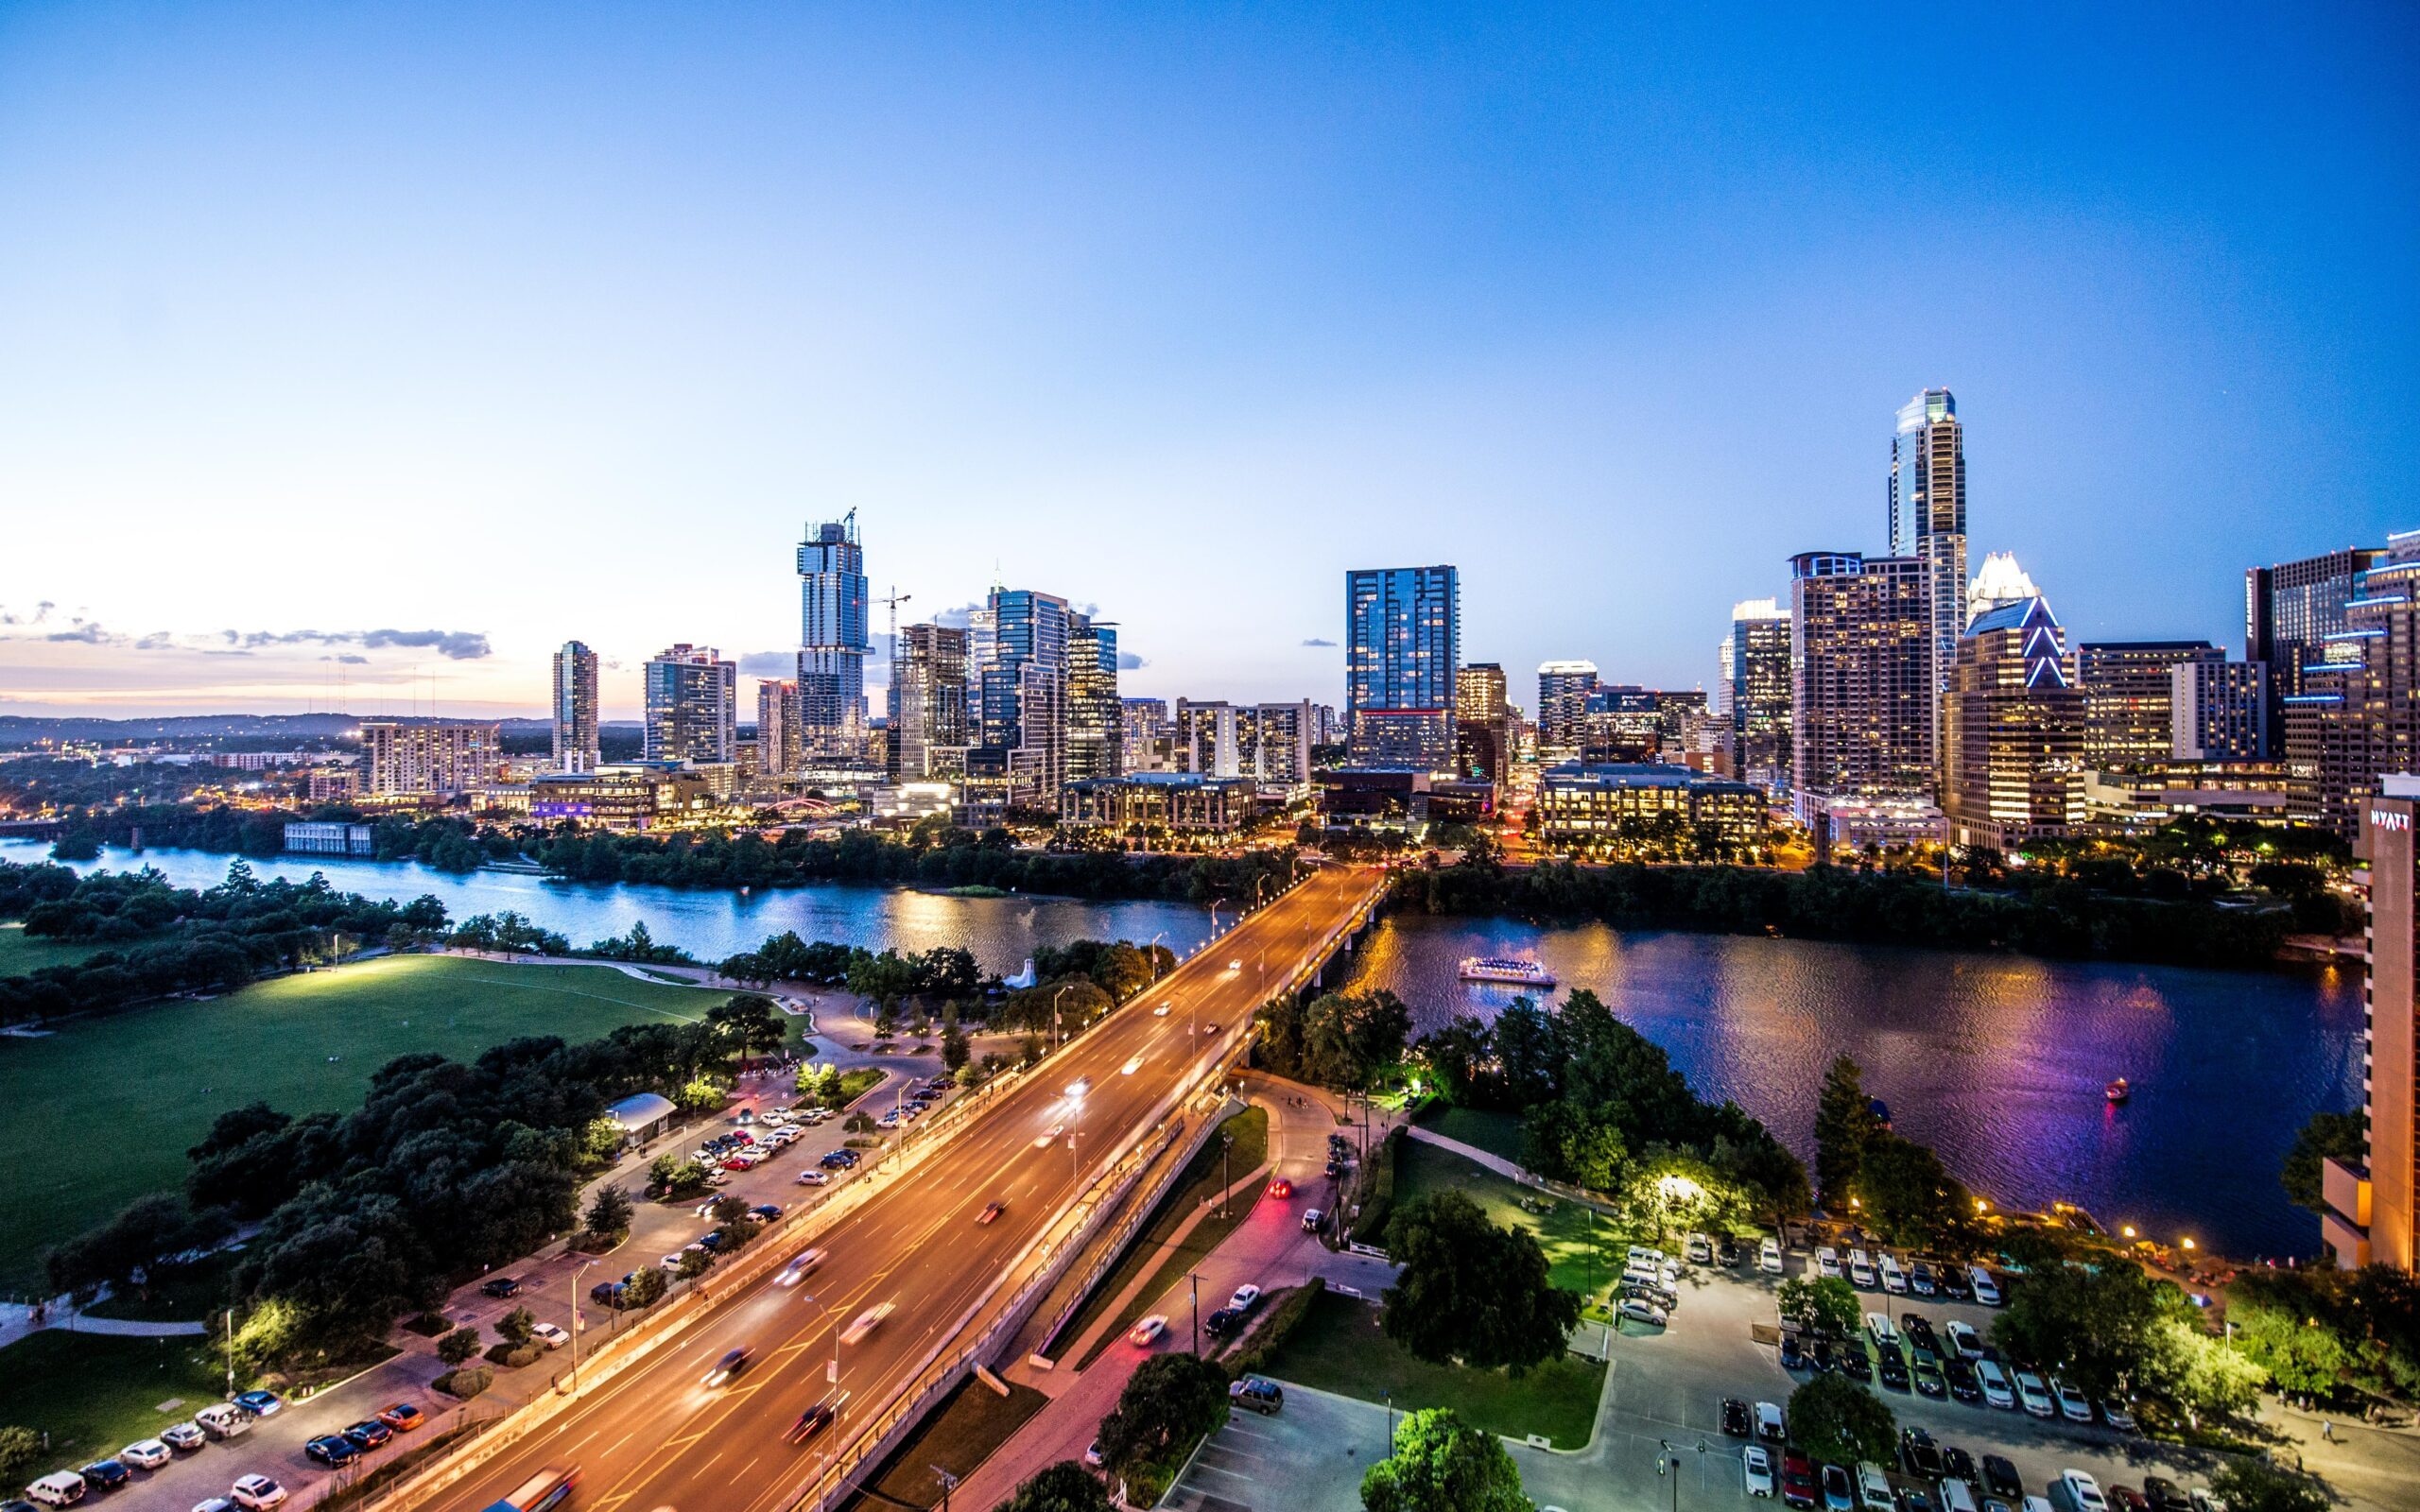 Travel To Austin on  Southwest Airlines